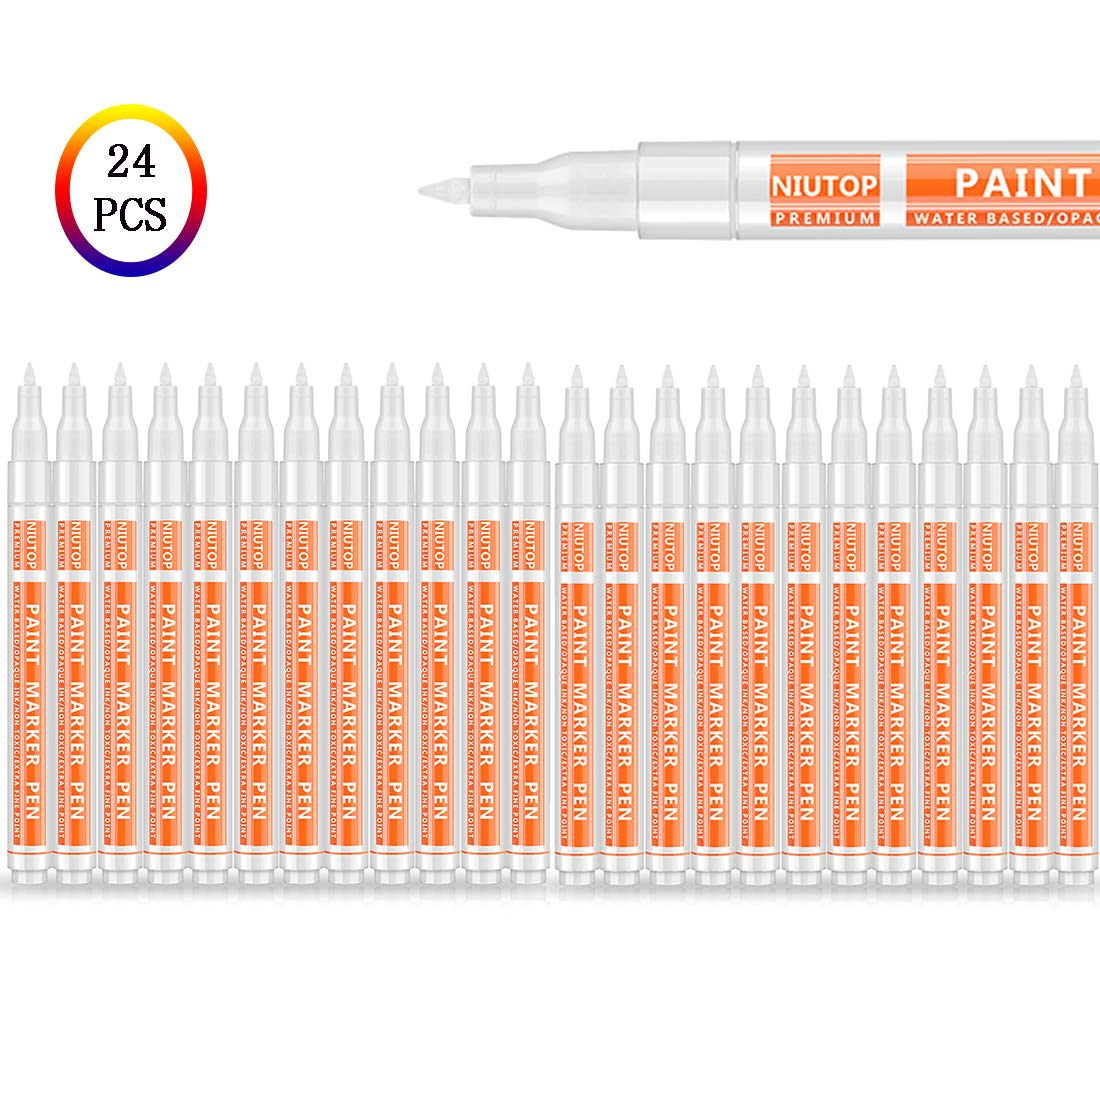 24 Pack White Paint Pen for Rock Painting, Acrylic White Paint Marker Pens Kit for Glass, Wood, Stone, Plastic, Metal, Ceramic & More, Extra Fine Tip, Water Based, Acid Free Non Toxic, Quick-Dry by Niutop